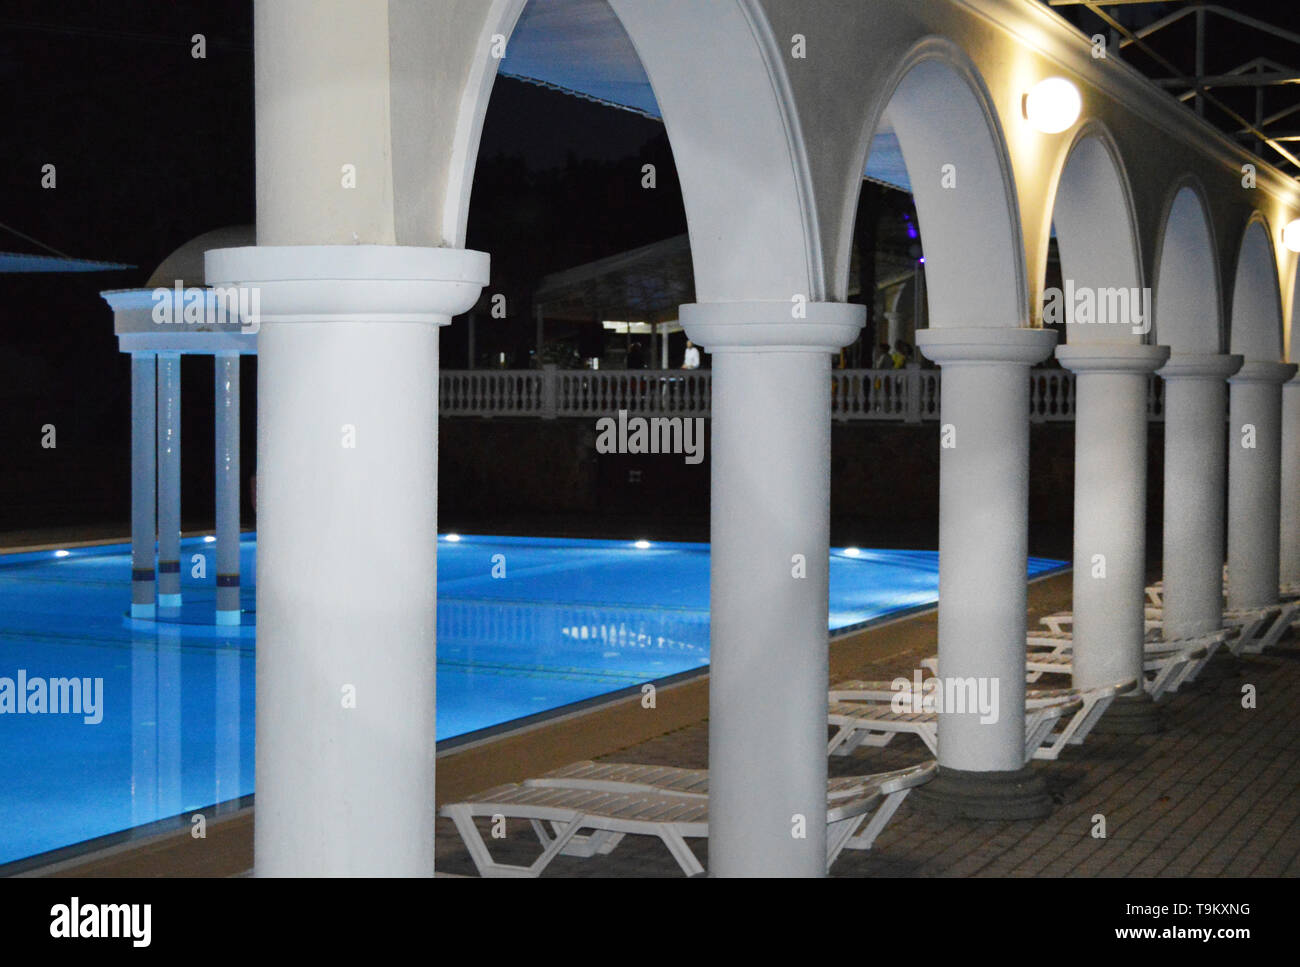 Arches By The Swimming Pool High Resolution Stock Photography And Images Alamy